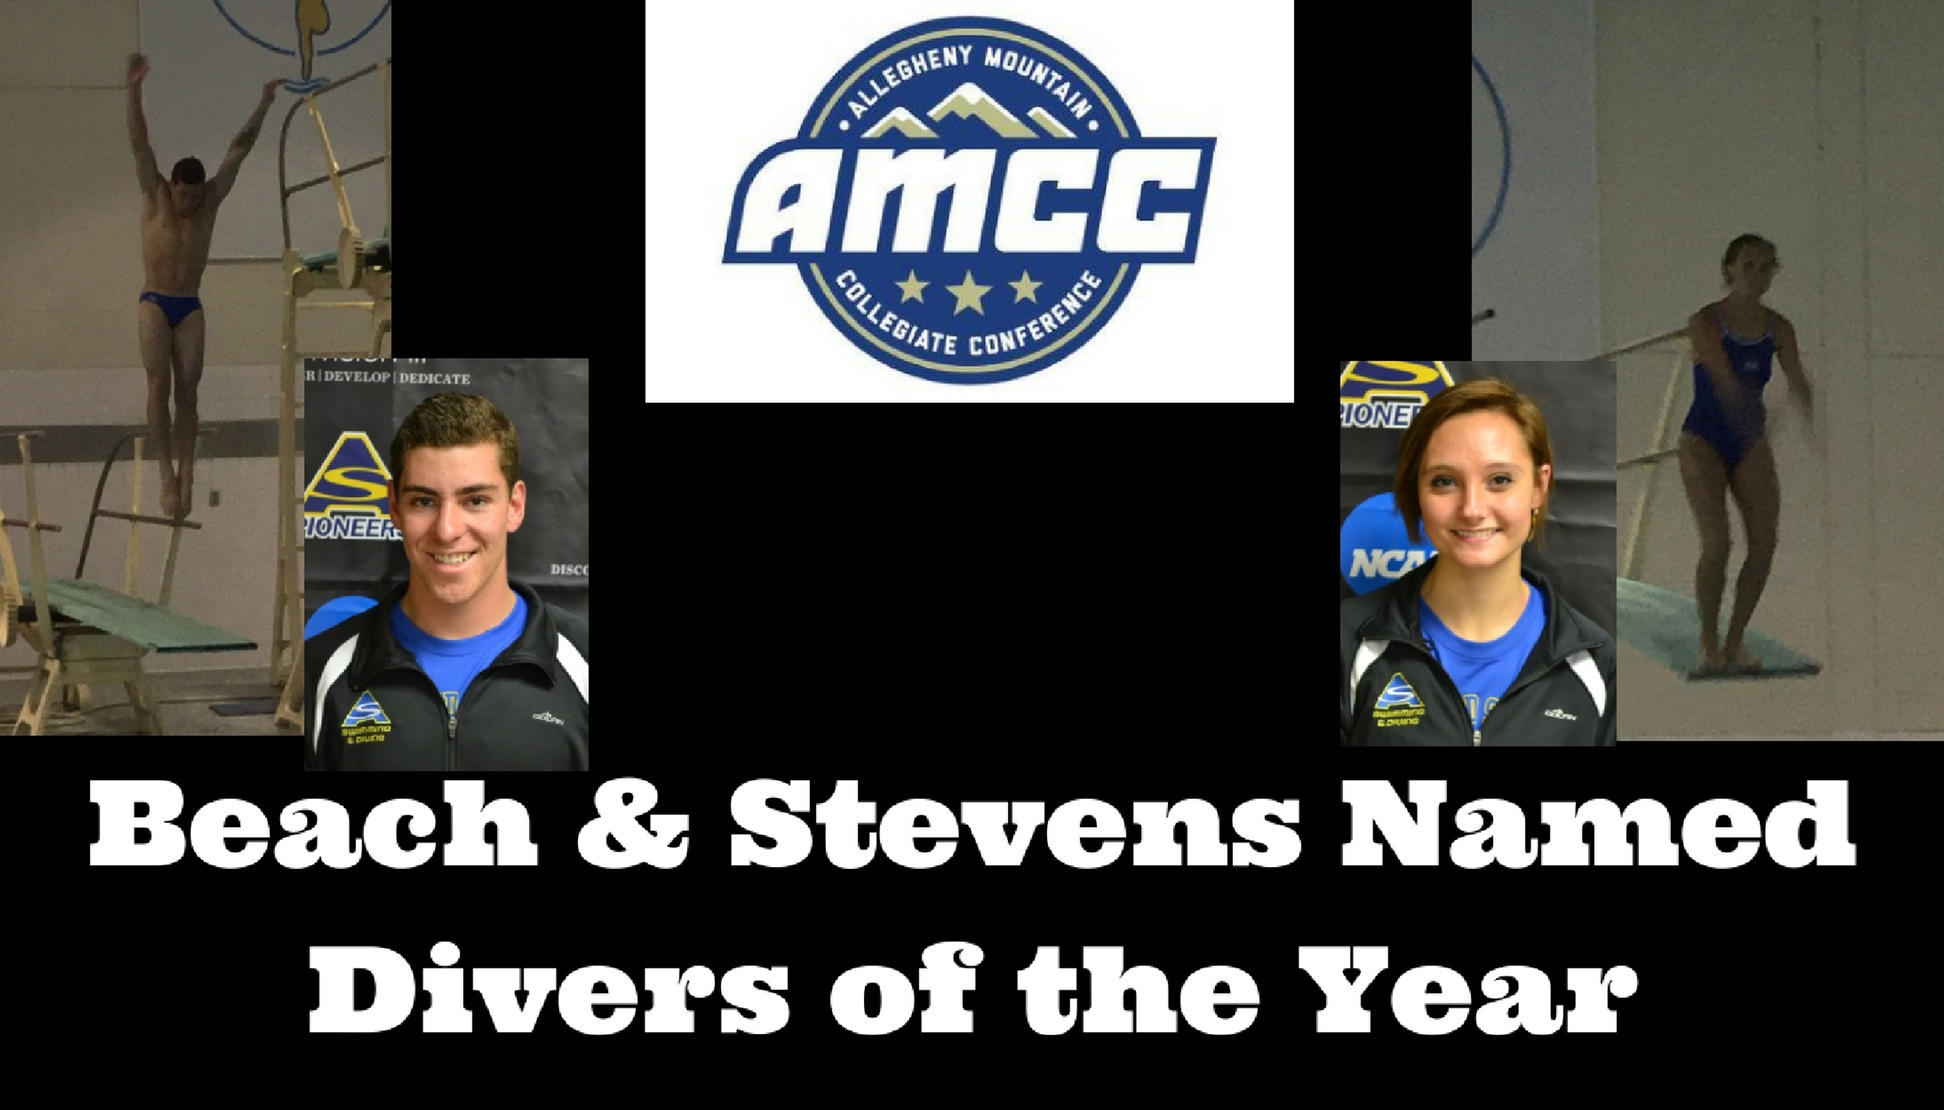 Beach and Stevens Named AMCC Divers of the Year